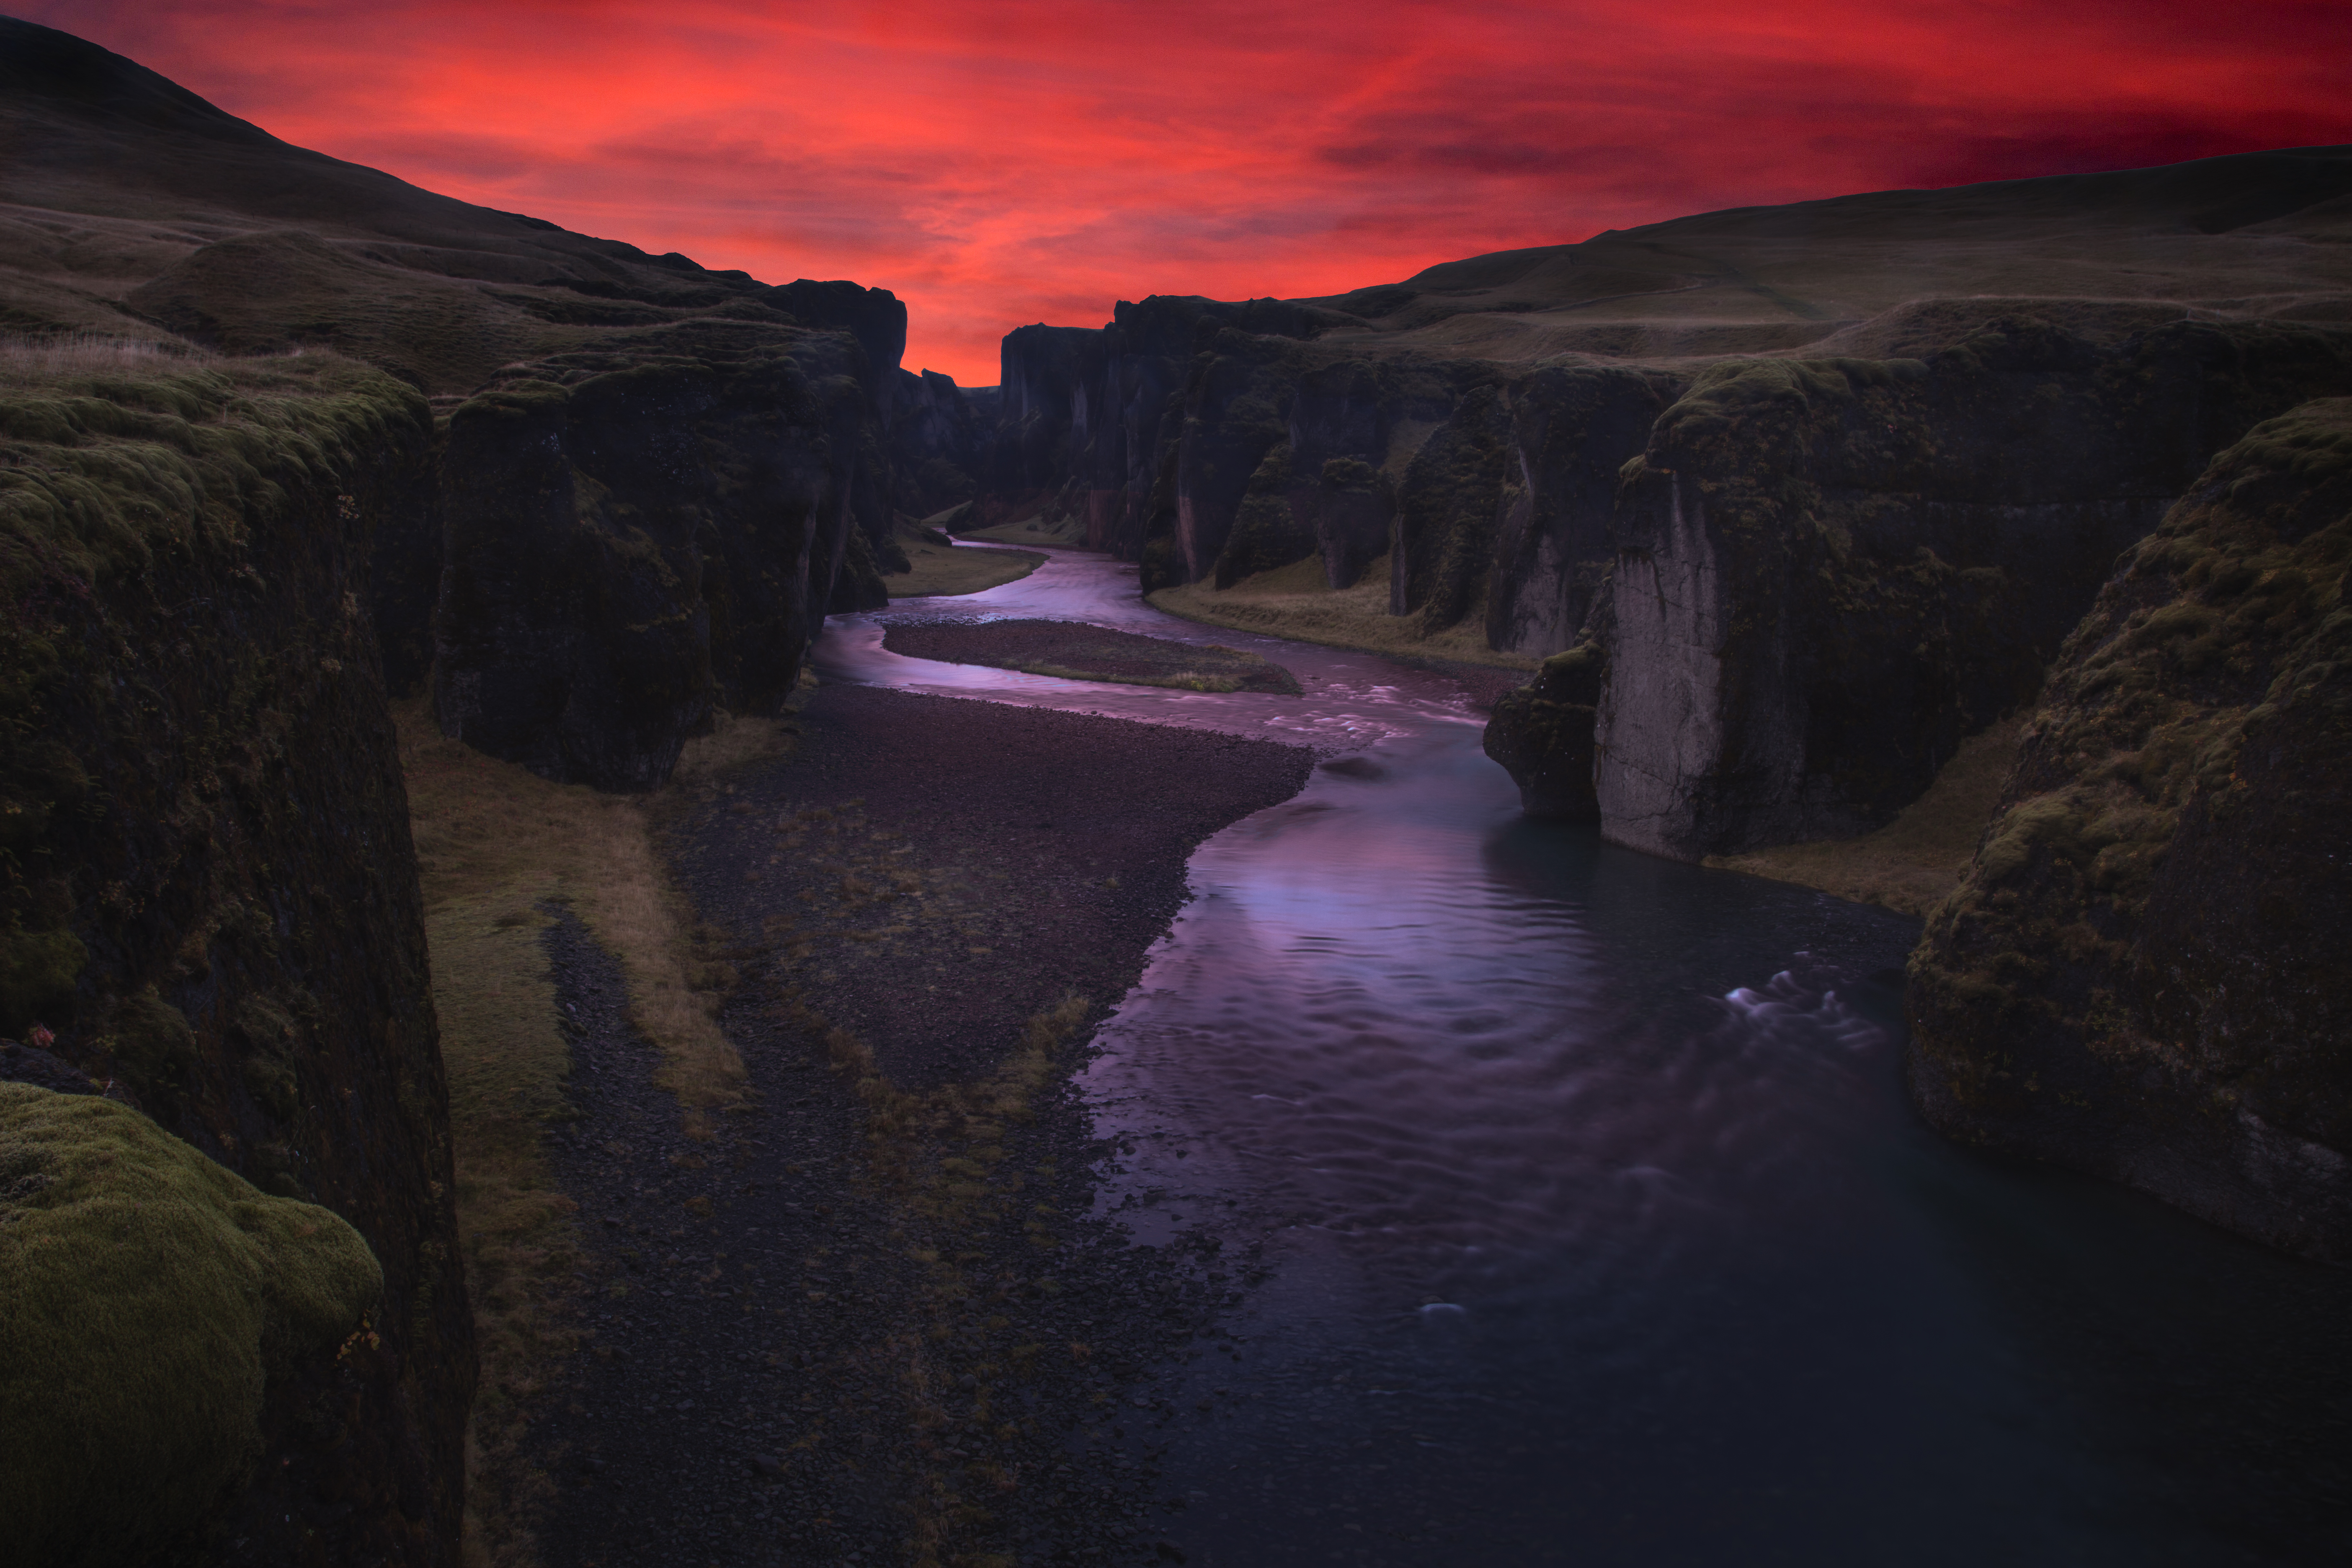 61310 download wallpaper Nature, Canyon, Rivers, Night, Fyadrarglyufur, Fiadrargllufur, Iceland screensavers and pictures for free